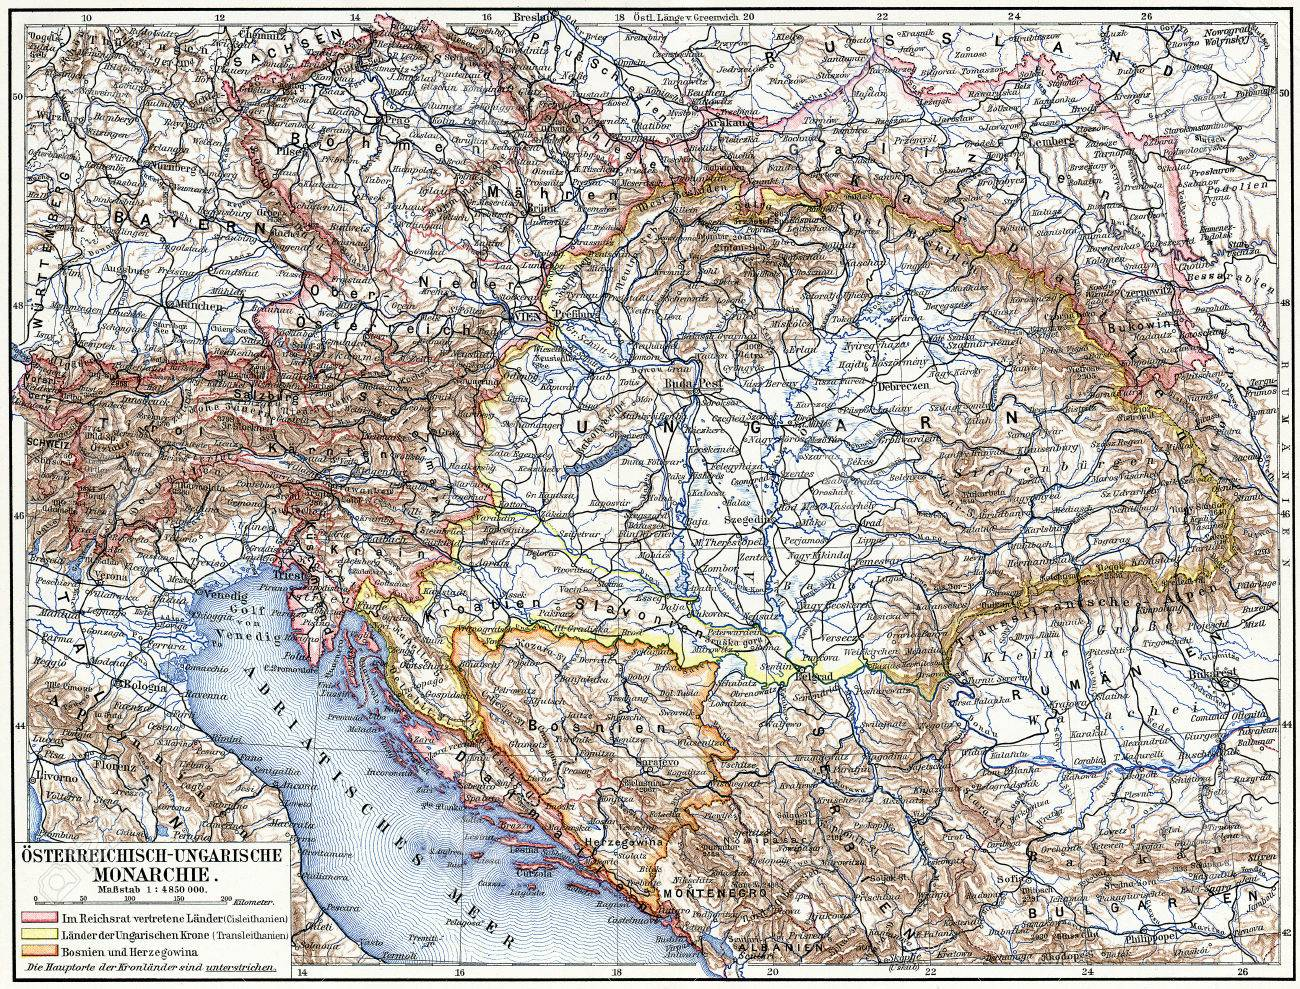 Map of Austro-Hungarian monarchy Publication of the book Meyers Konversations-Lexikon , Volume 7, Leipzig, Germany, 1910 - 28164888